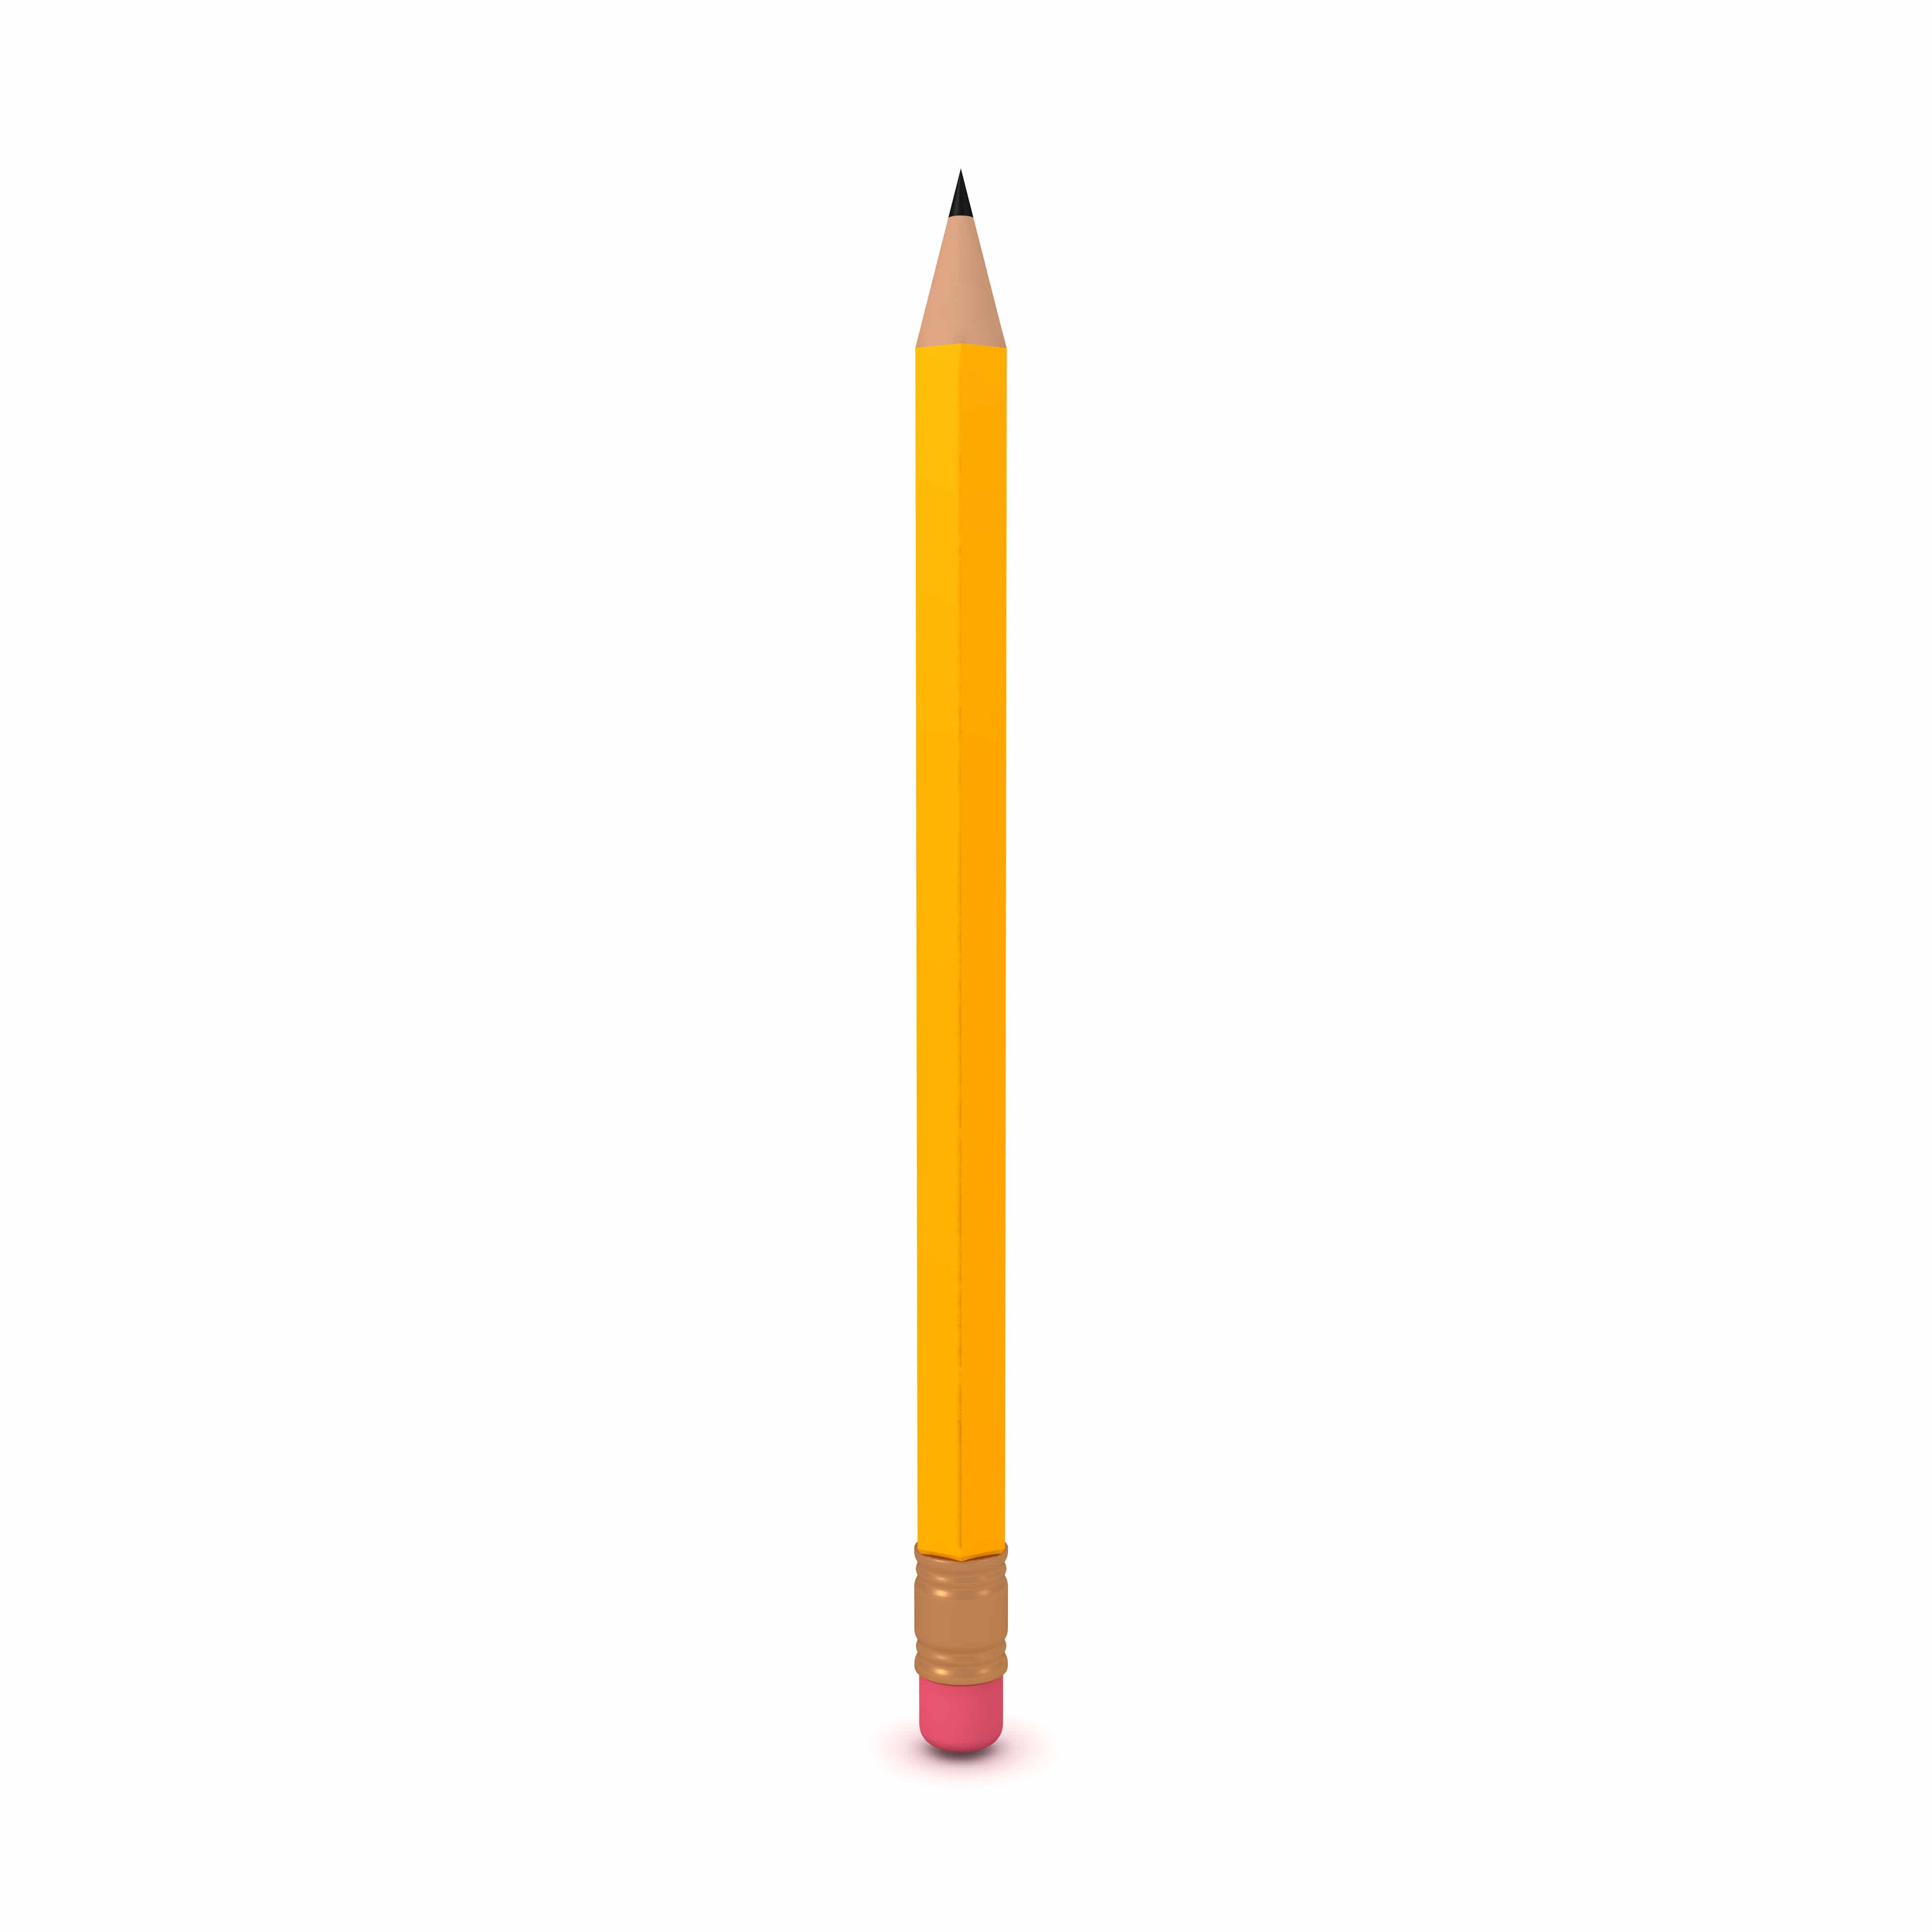 3D illustration of a vertical number two pencil. 3D Rendering isolated on white.